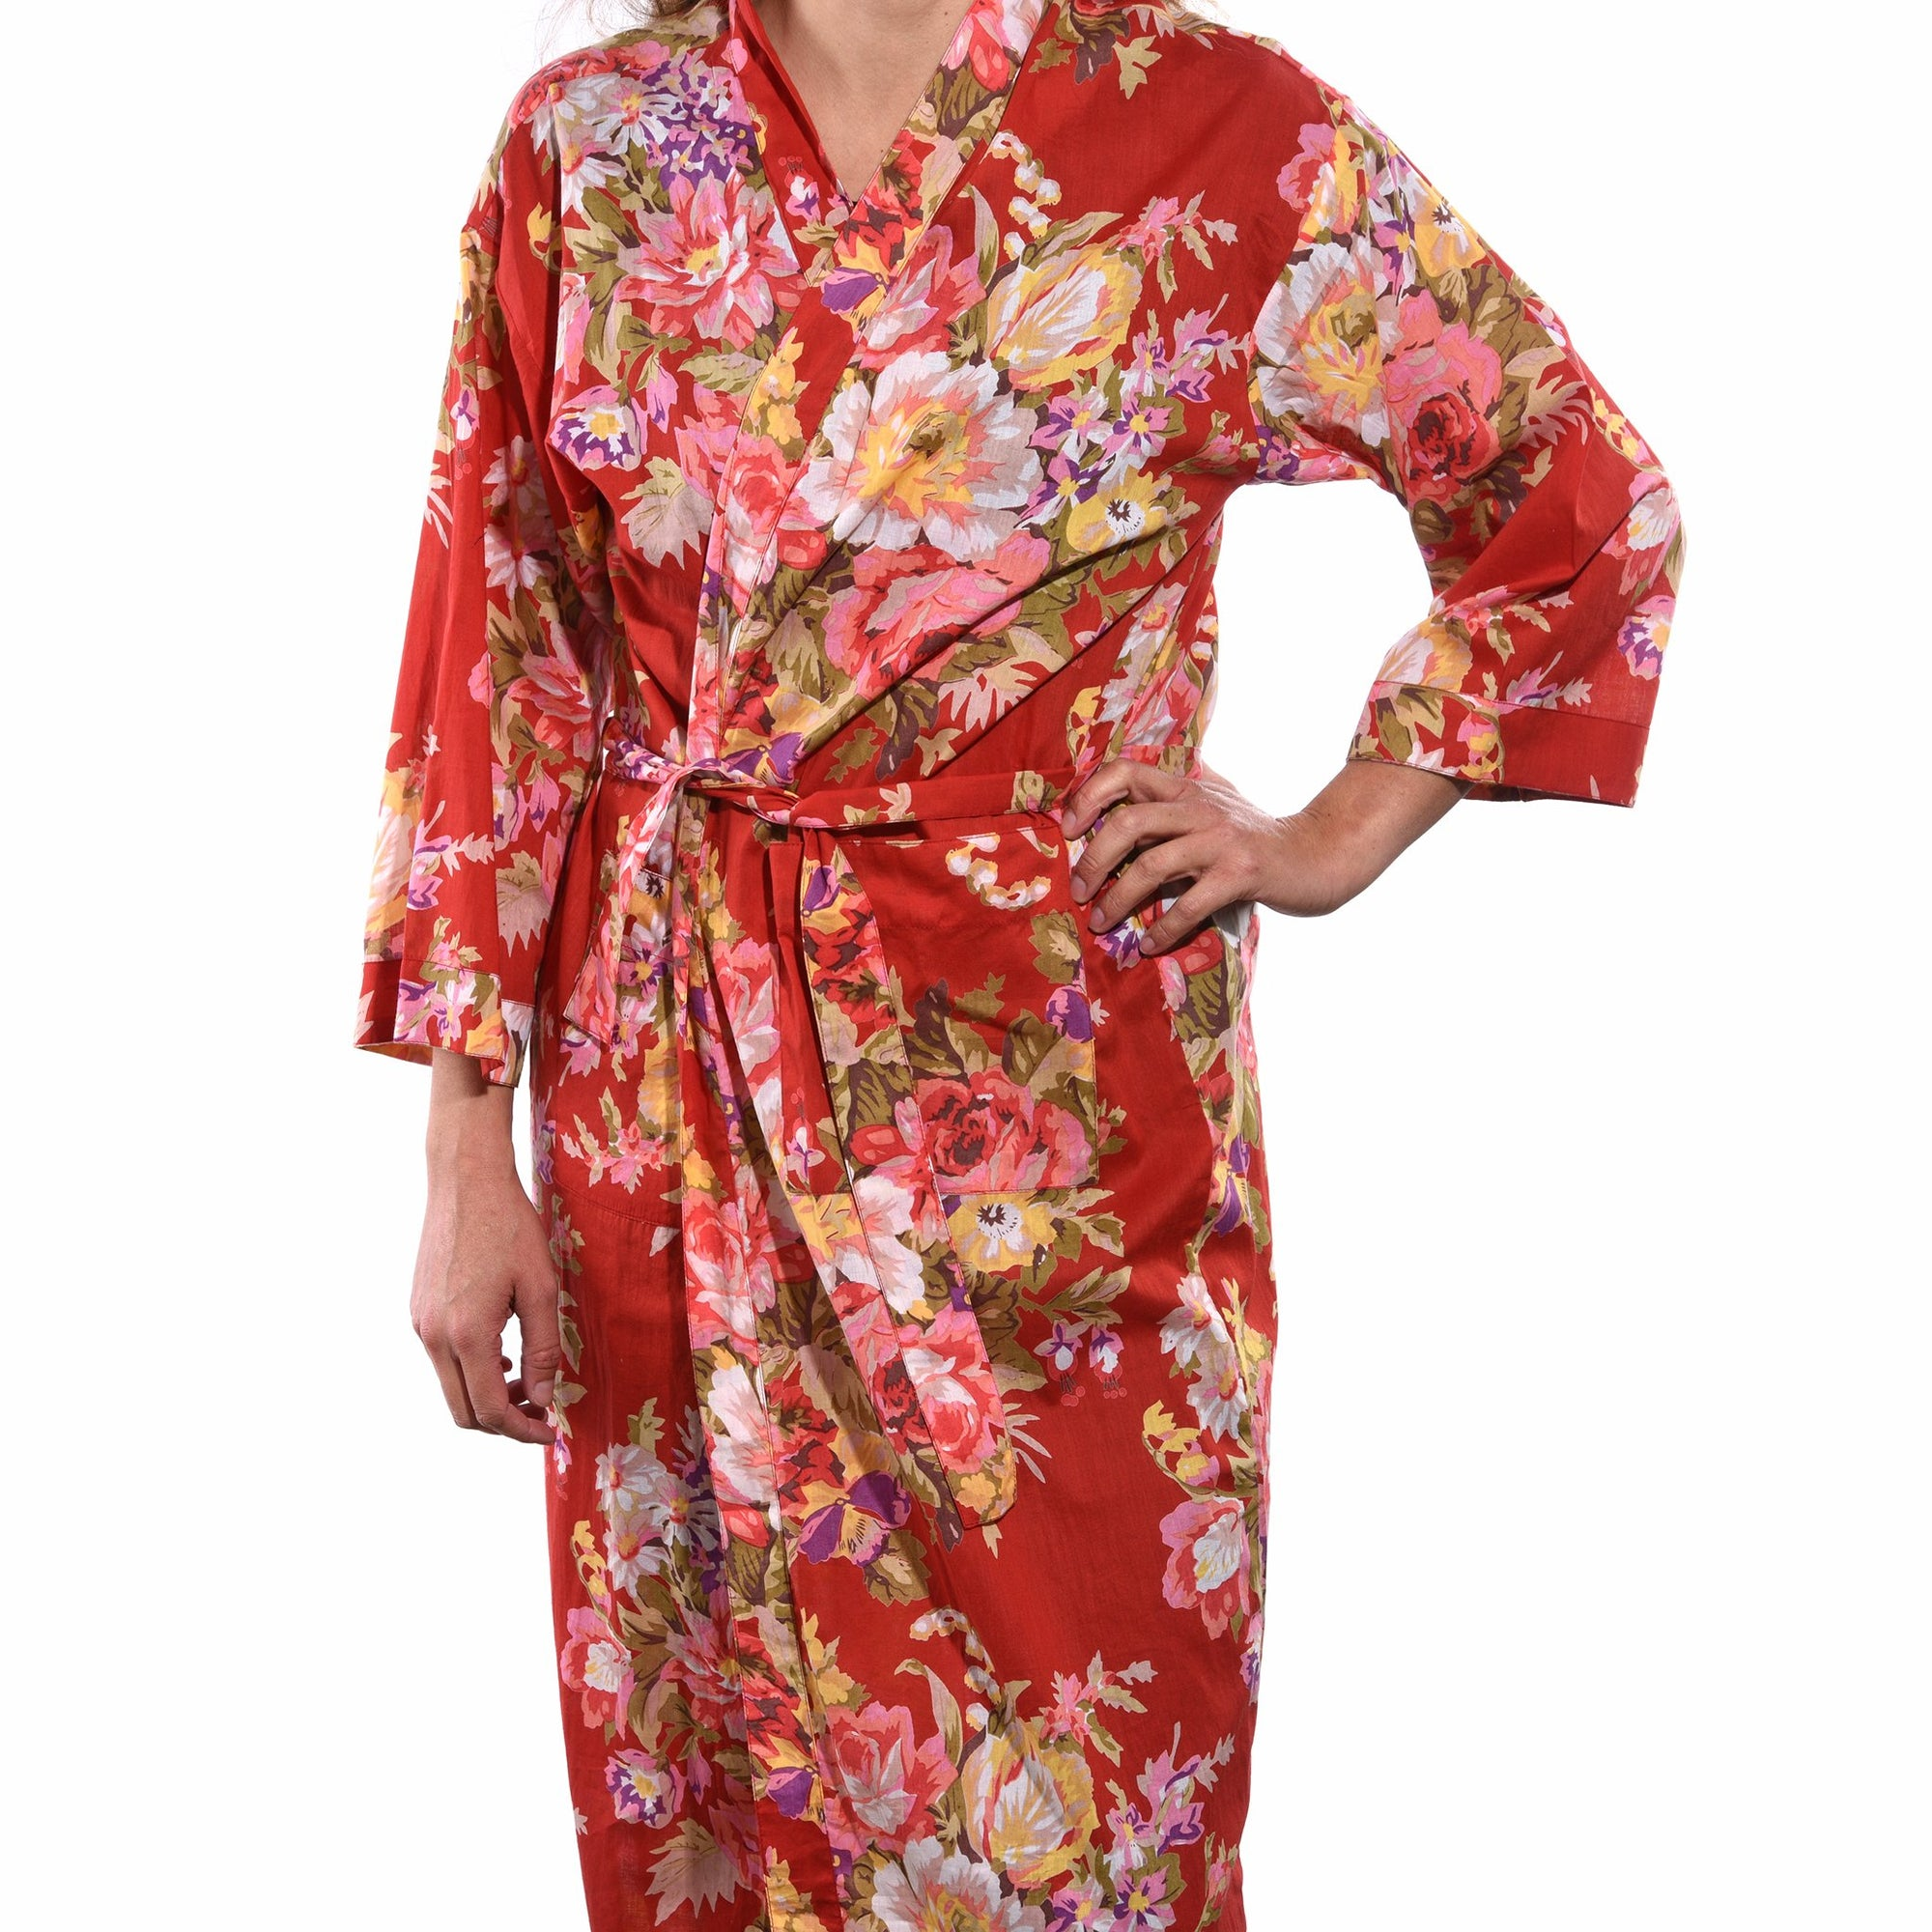 Indian - Fine - Cotton - Printed - Shanghai - Floral - Red - Bath - Robe - Unisex - 100%